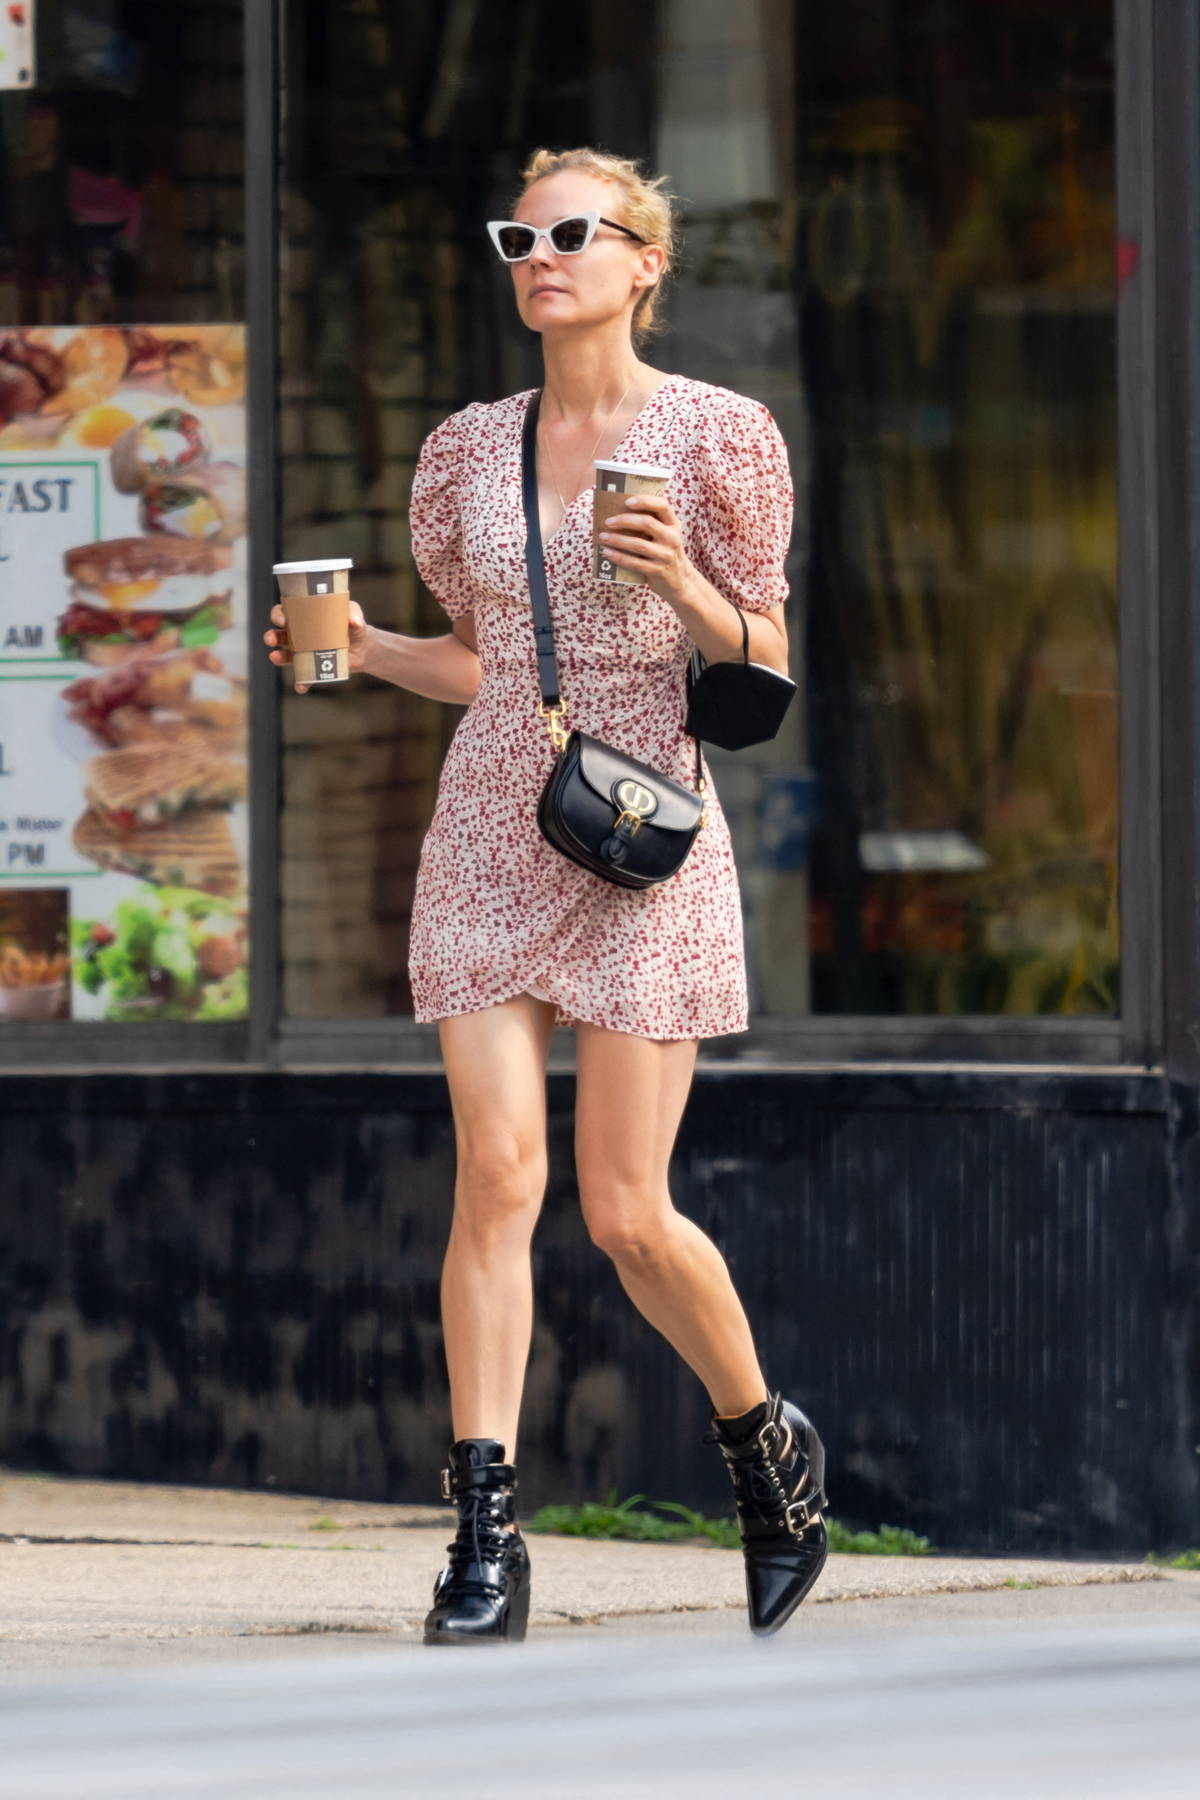 Diane Kruger looks great in a patterned mini dress while out for a stroll with a friend in New York City